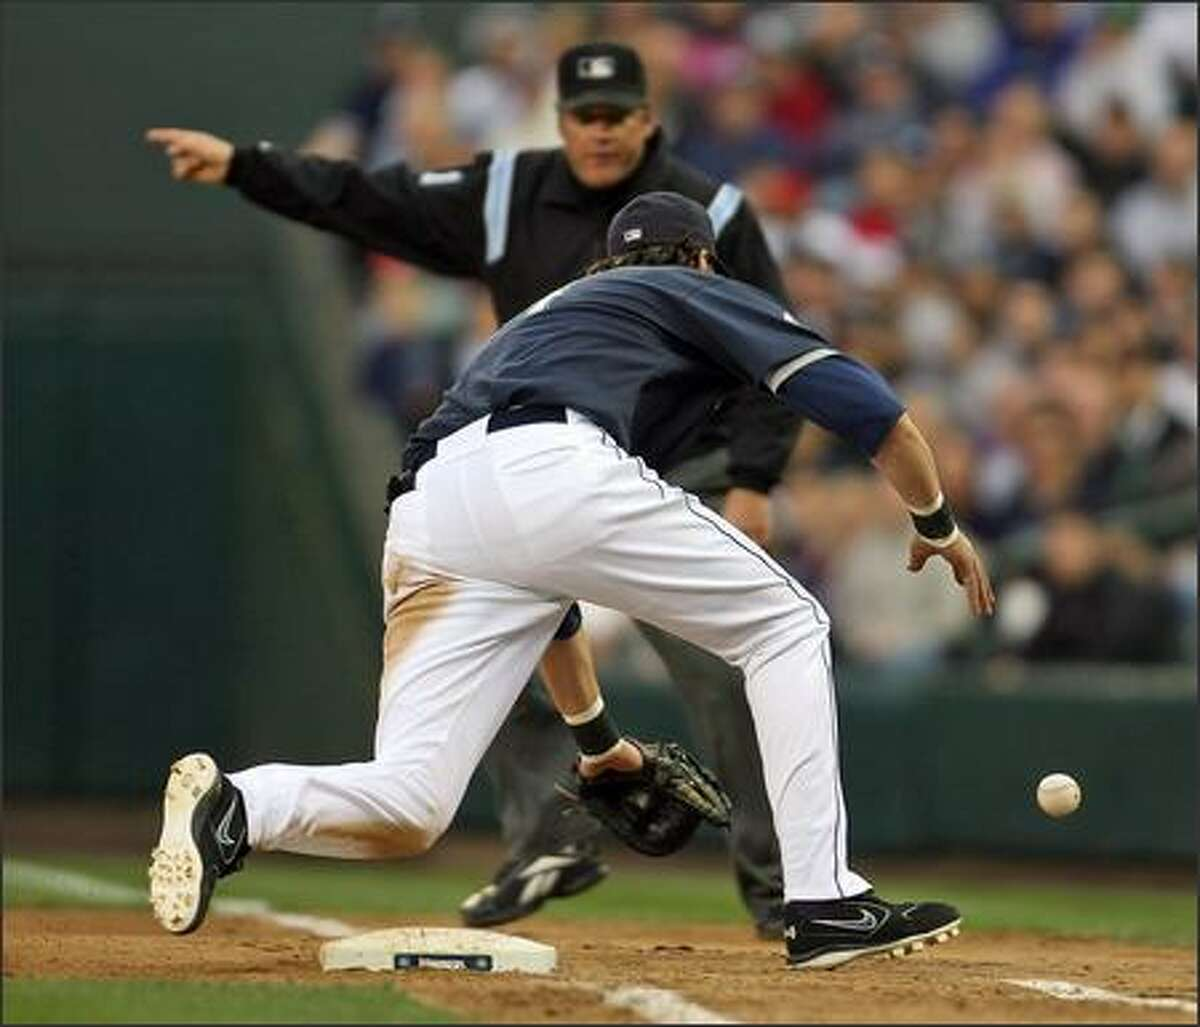 Mariners Richie Sexson chases a ball hit by the Yankees' Robinson Cano during the fourth inning.